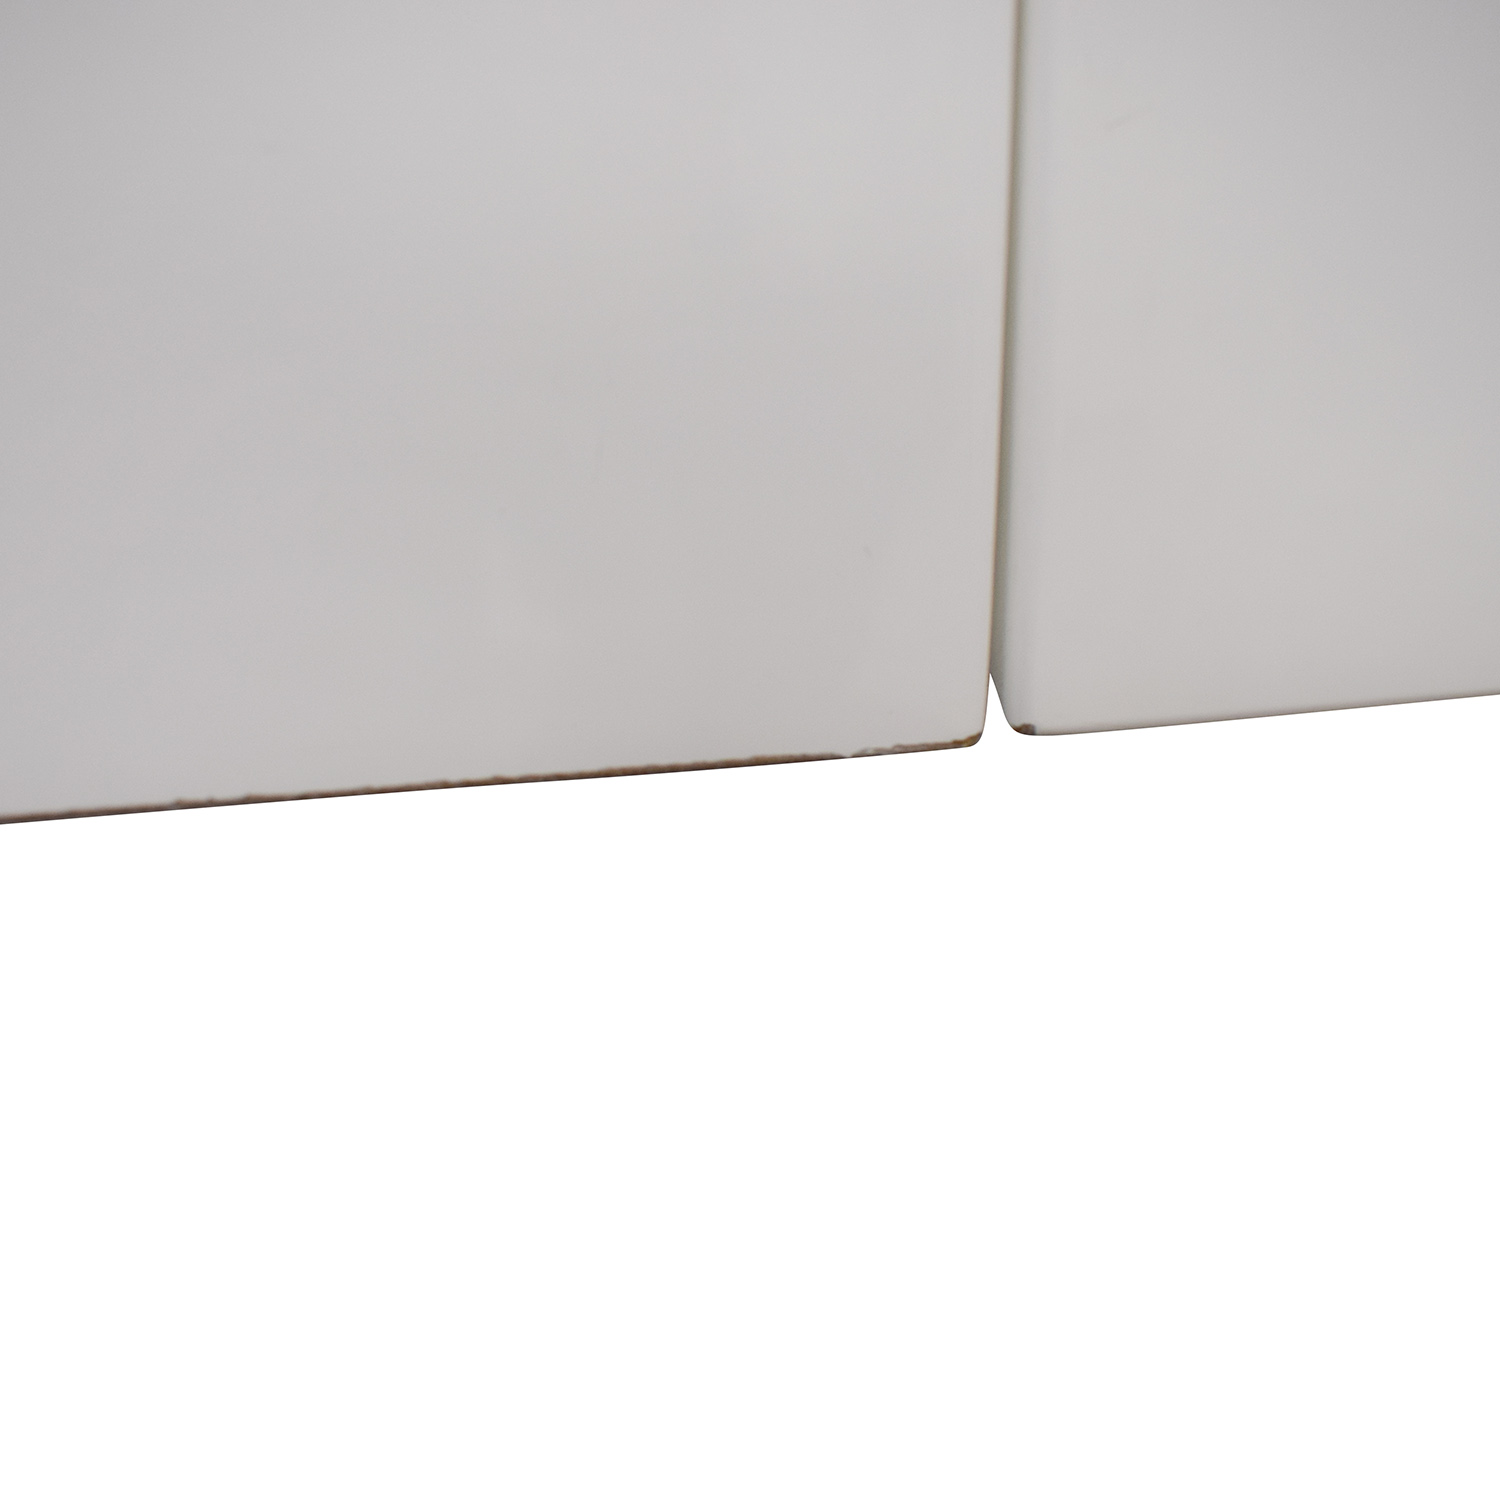 CB2 CB2 Runway White Lacquer Two-Drawer Desk used